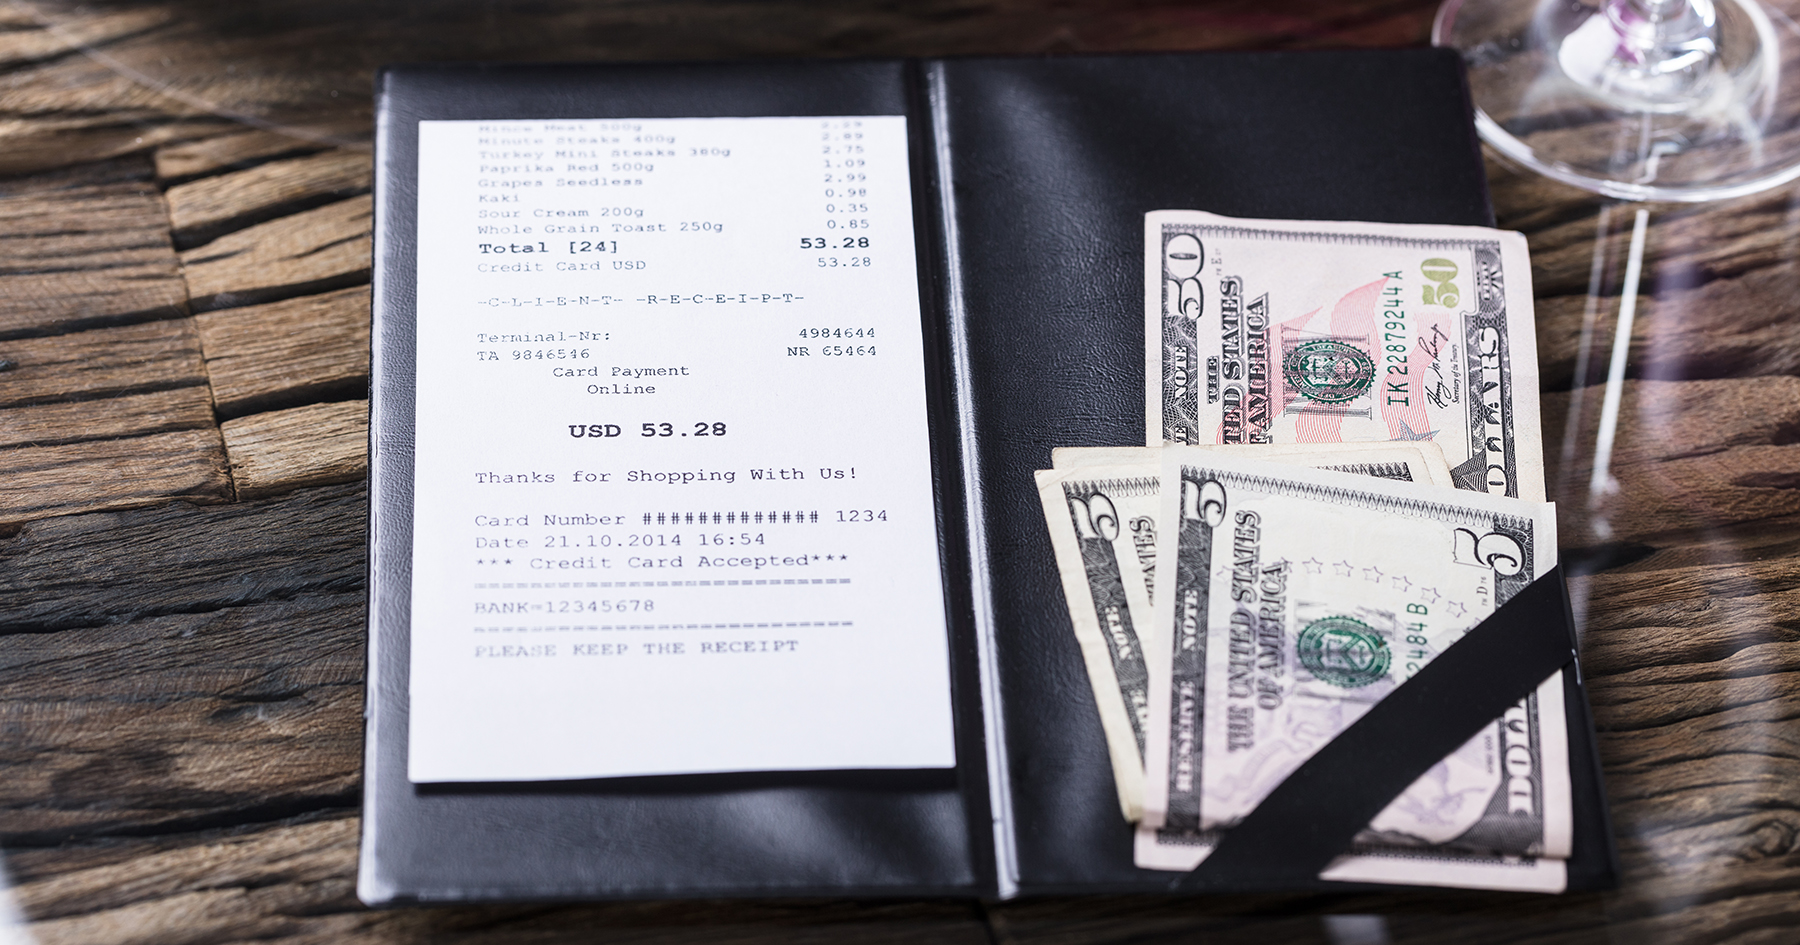 Dol Reasserts Restaurants Rights To A Tip Credit For Side